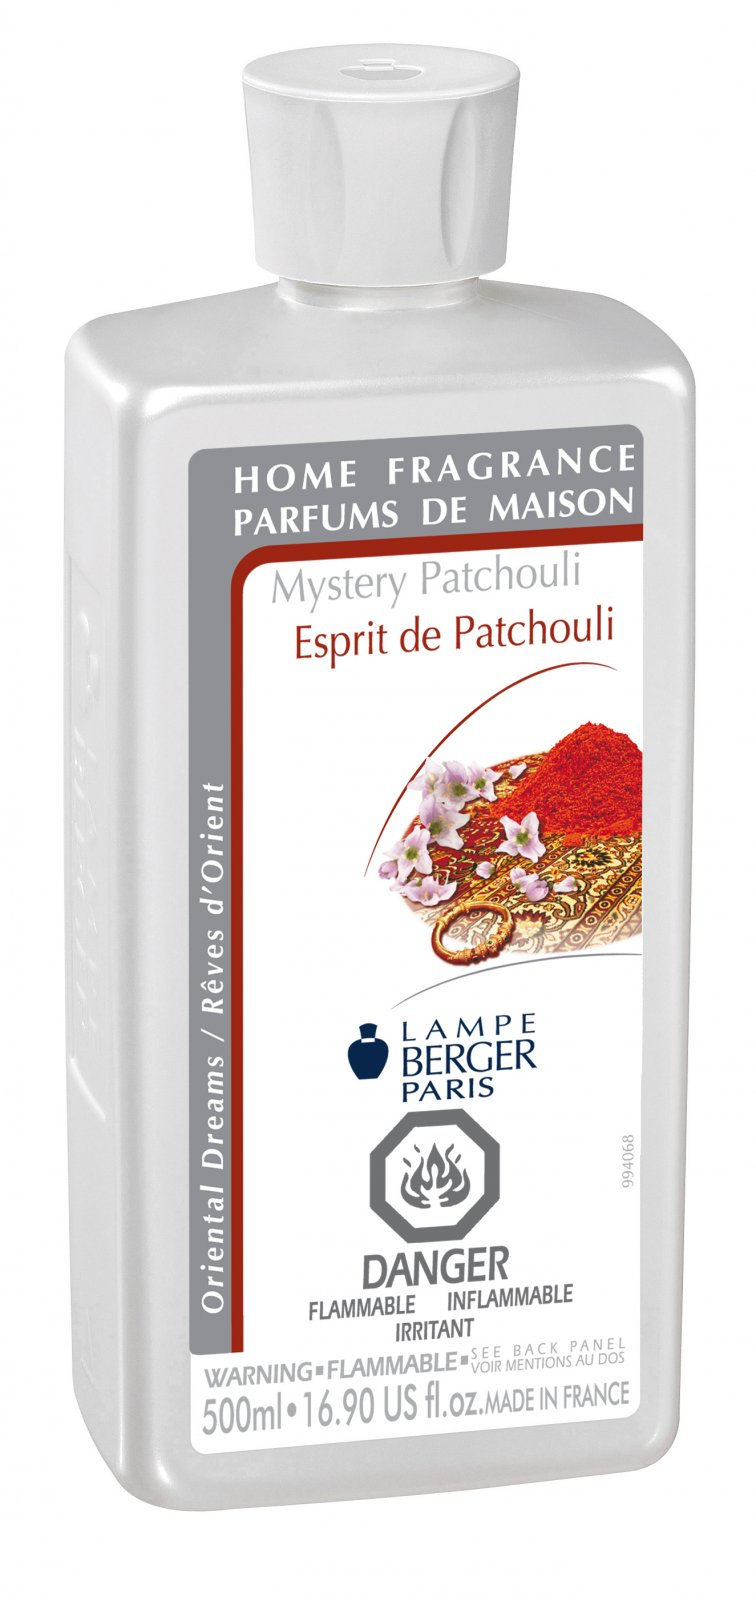 Fragrances by Lampe Berger